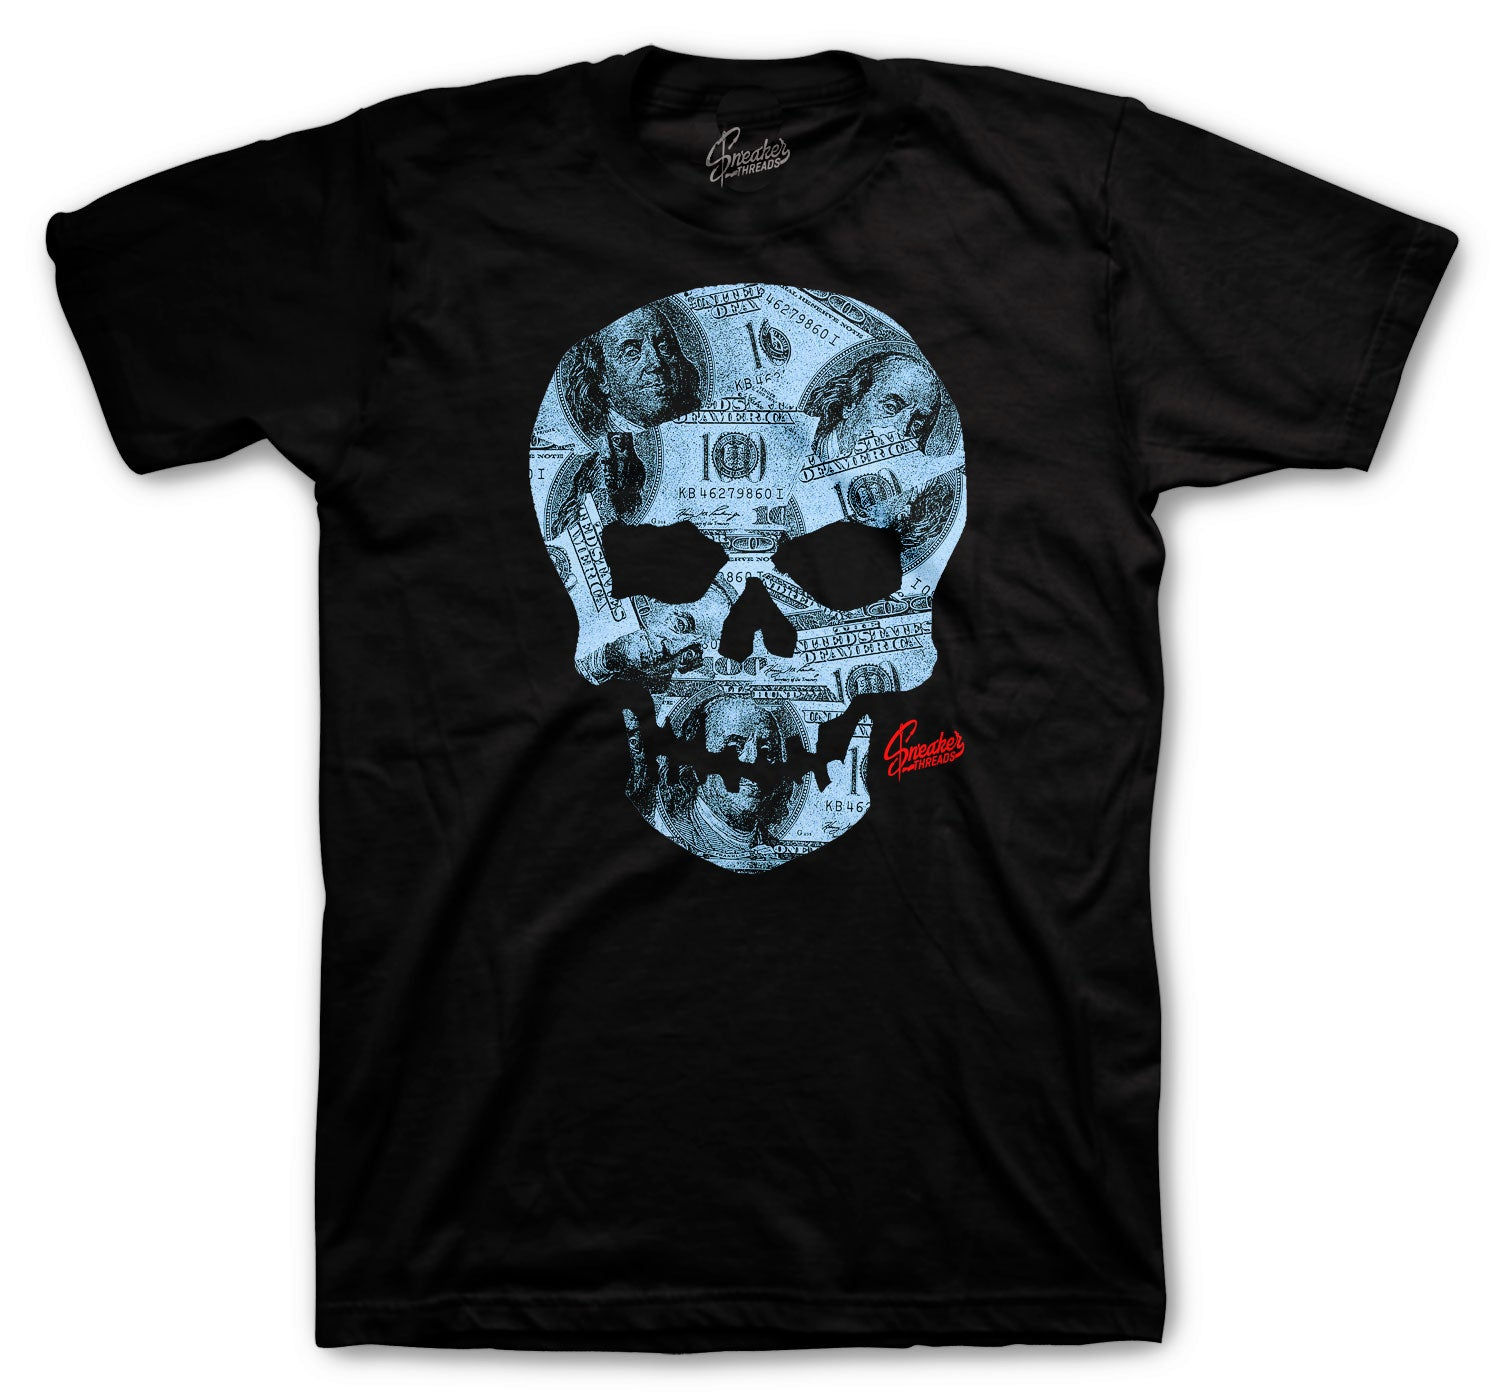 Jordan 4 University Blue Shirt - Money Skull - Black